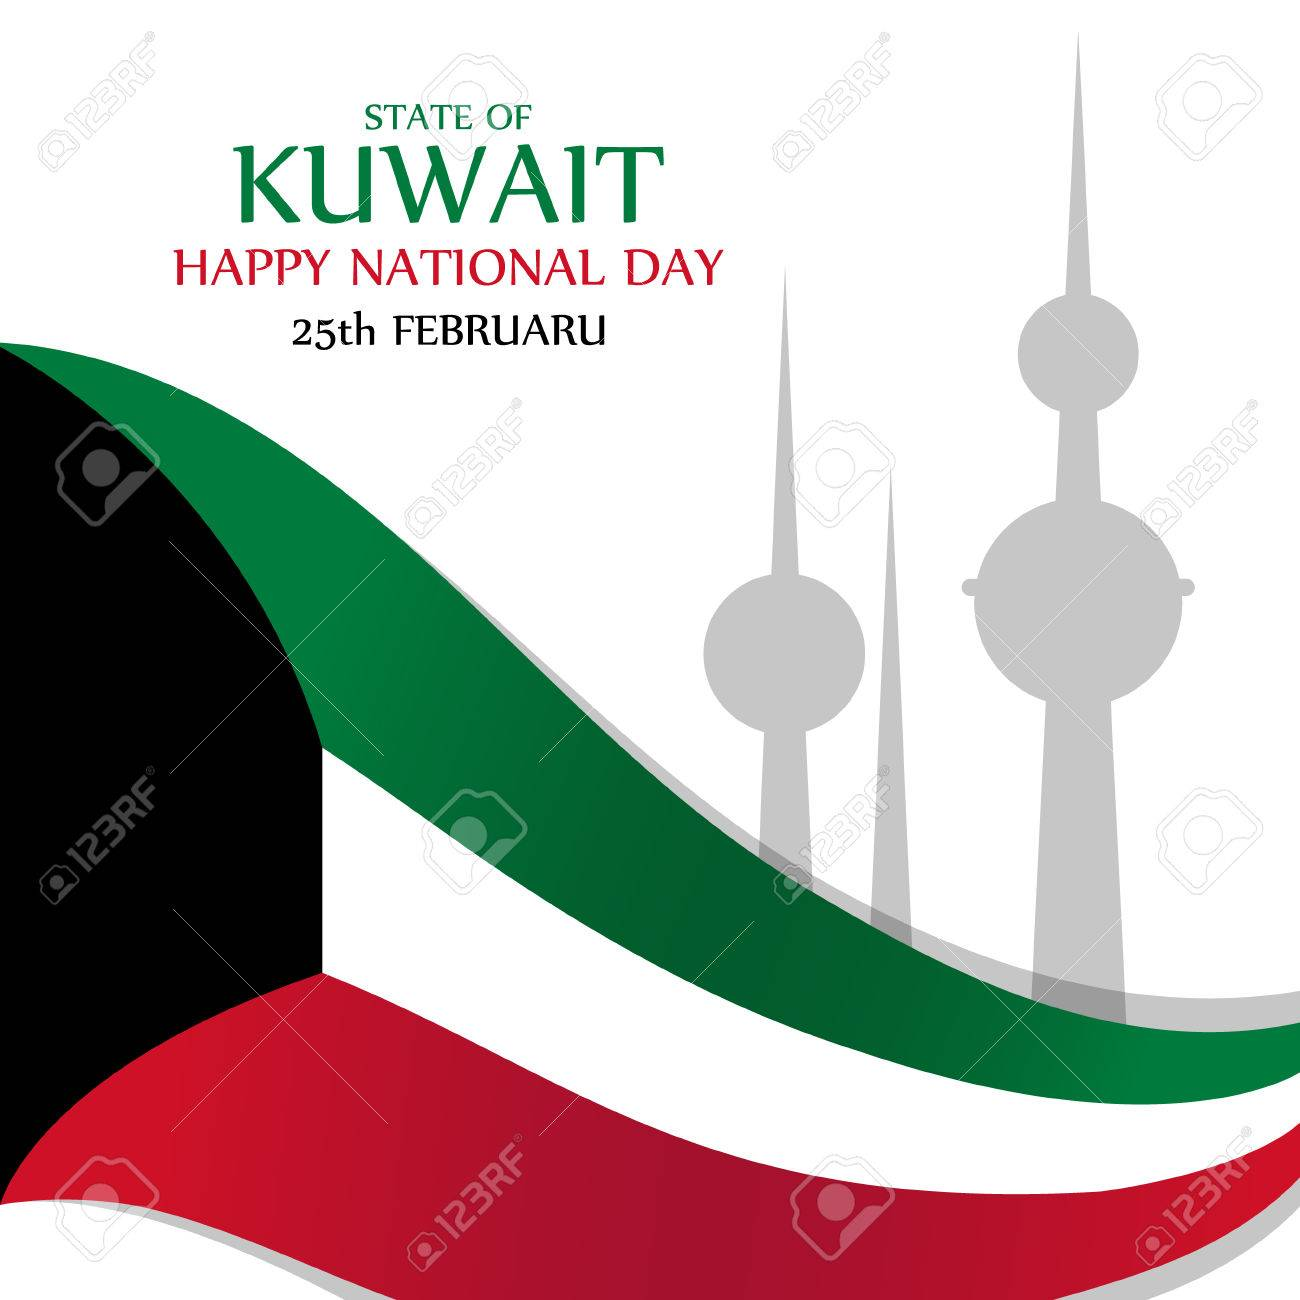 State Of Kuwait Happy National Day Greeting Card Vector